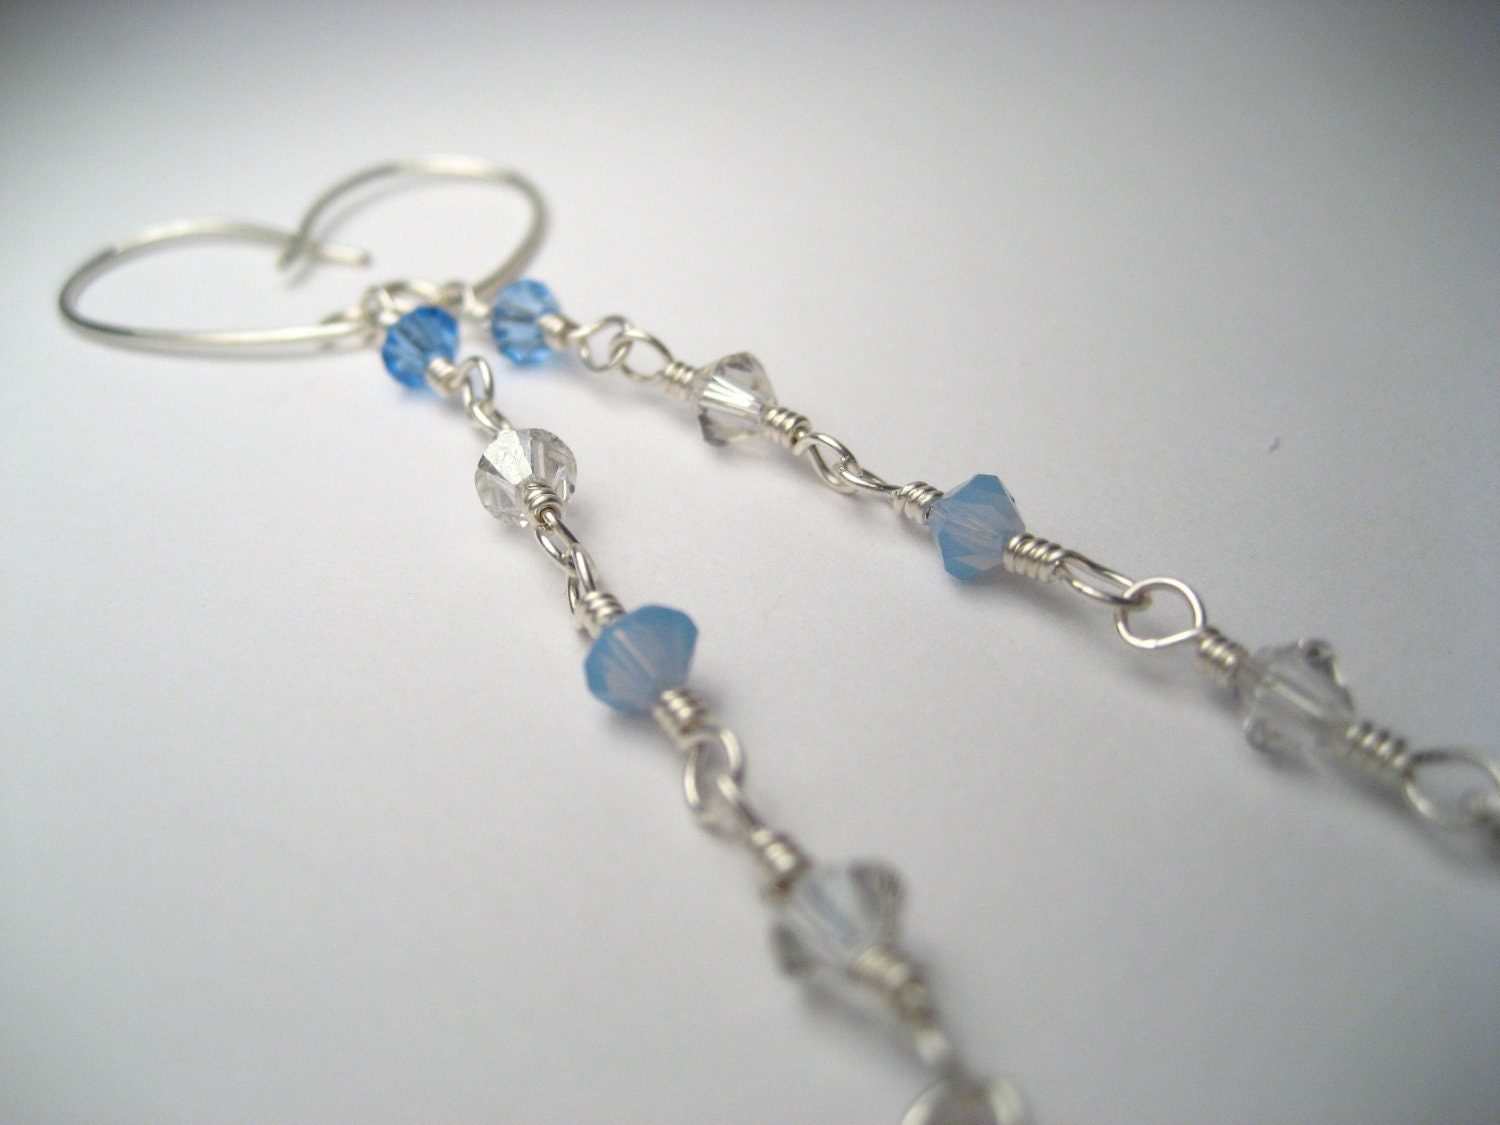 Blue & White Winter Dangle Earrings Long Sterling Silver